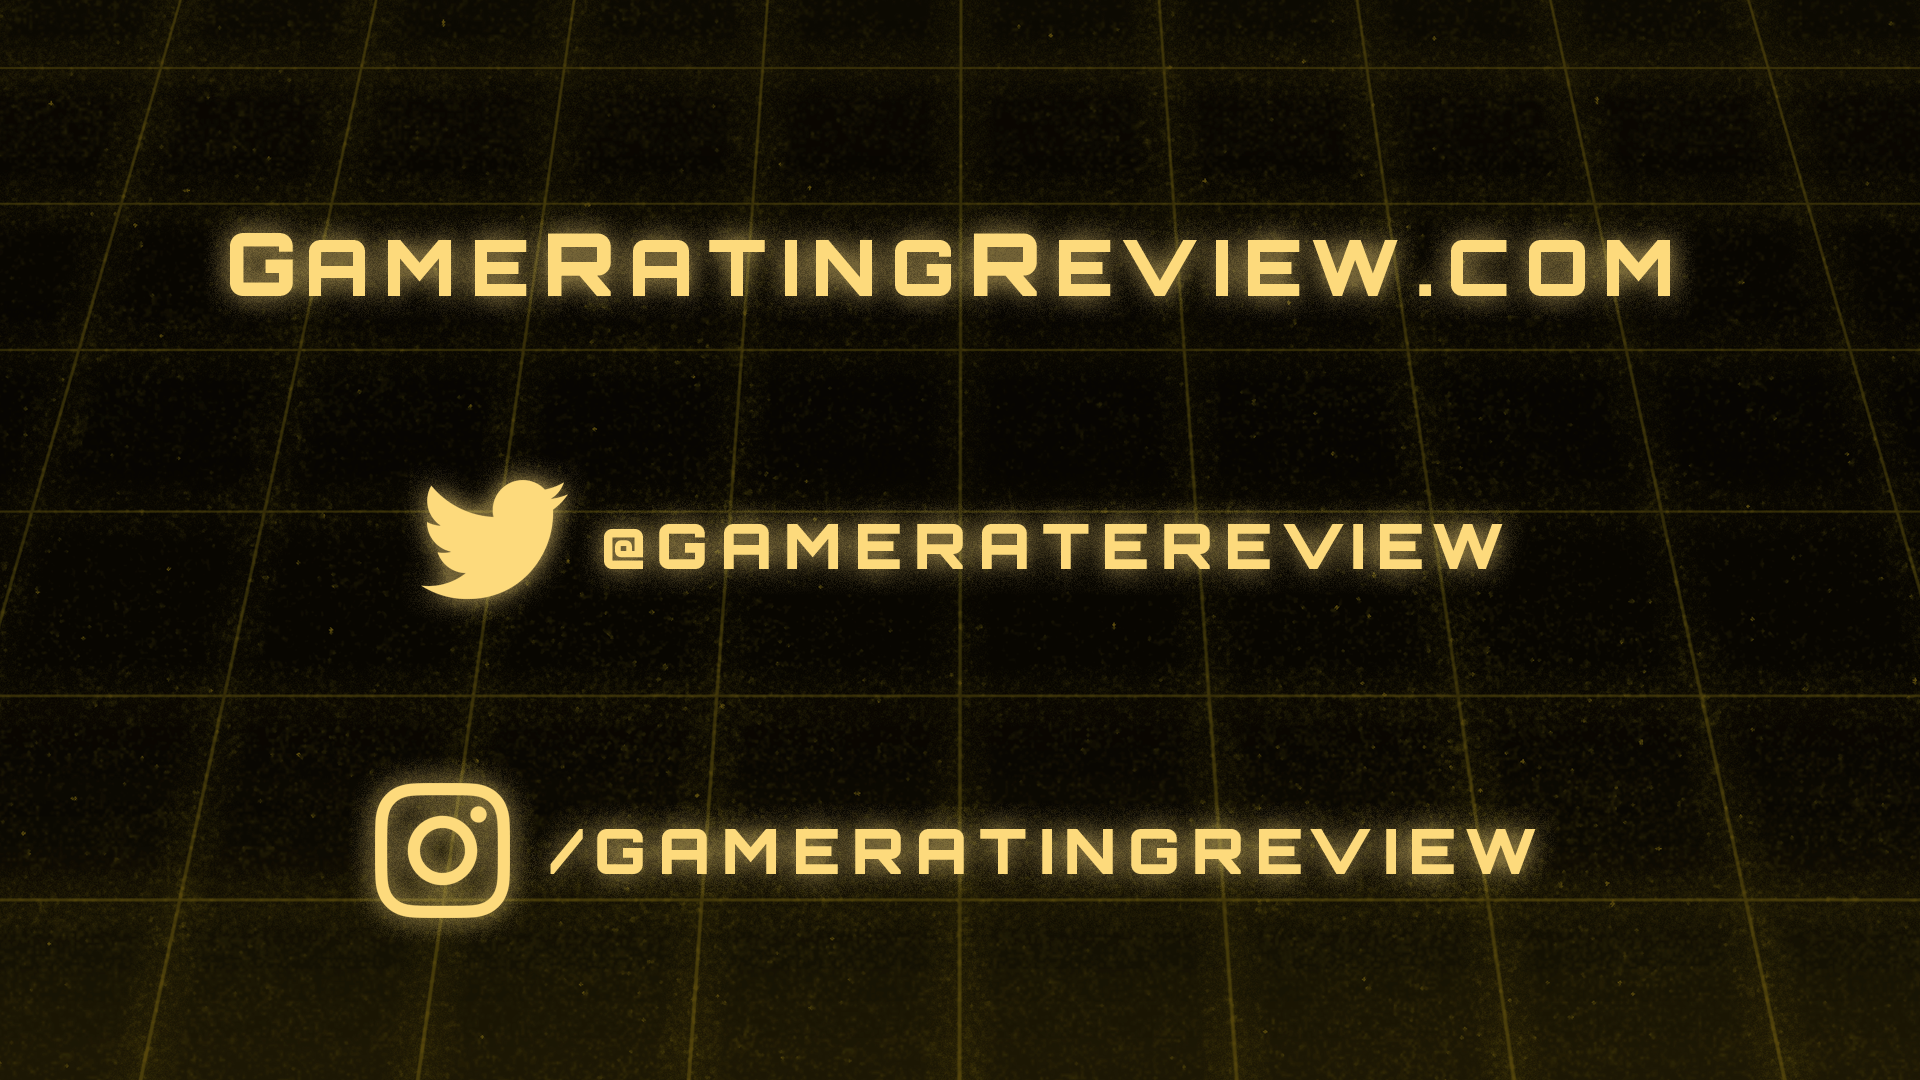 Connect with Game Rating Review